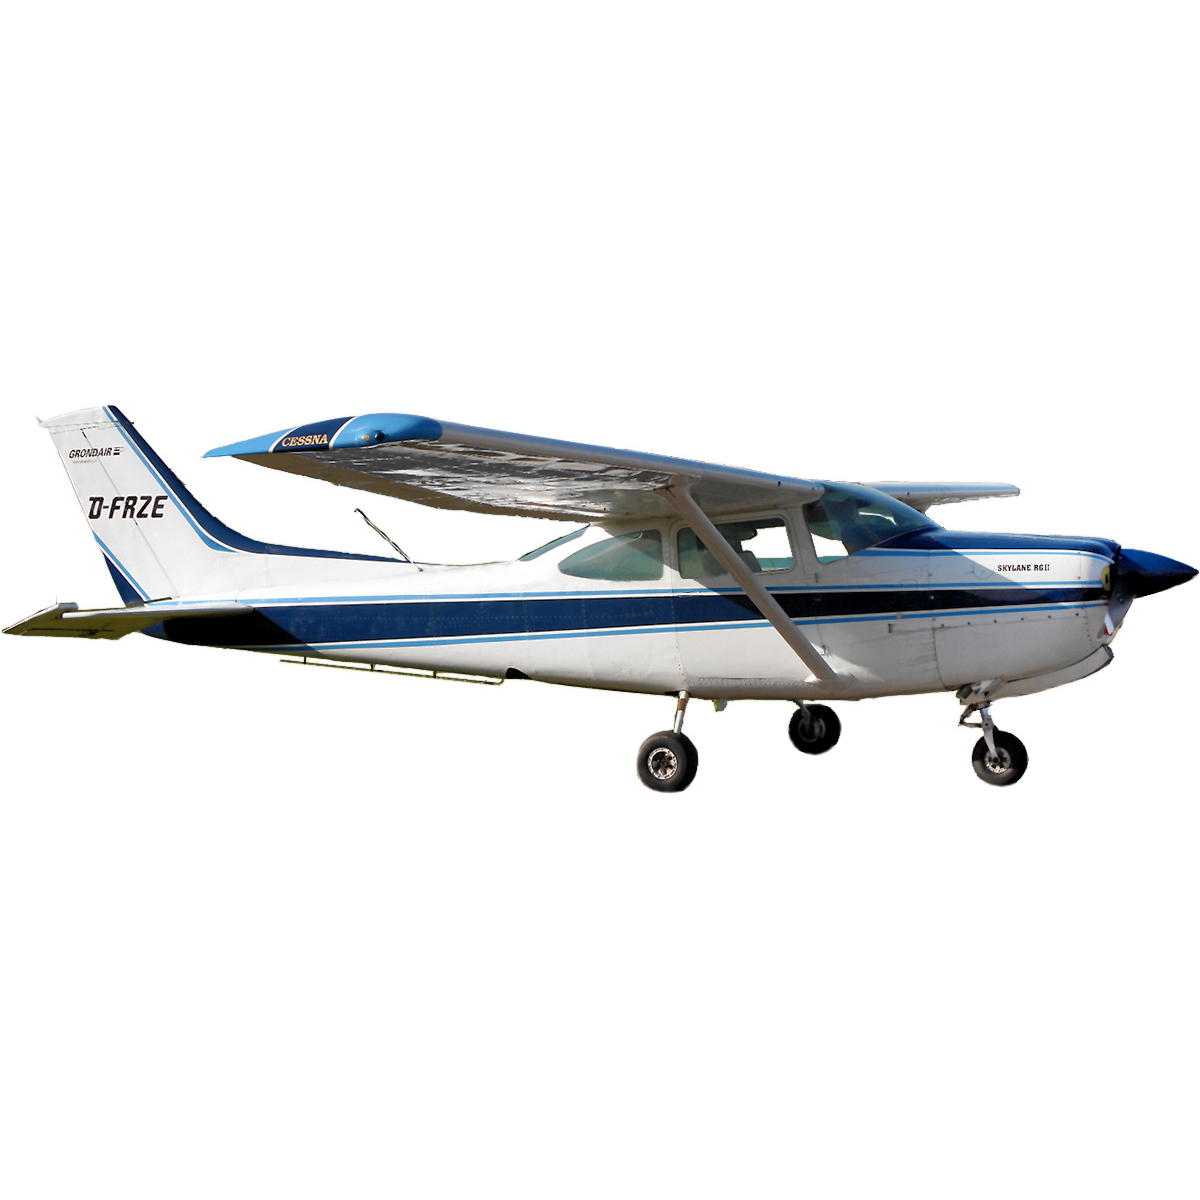 FileWRM Airplane   Flugzeug Cessna 172jpg   Wikimedia Commons 1200x1200